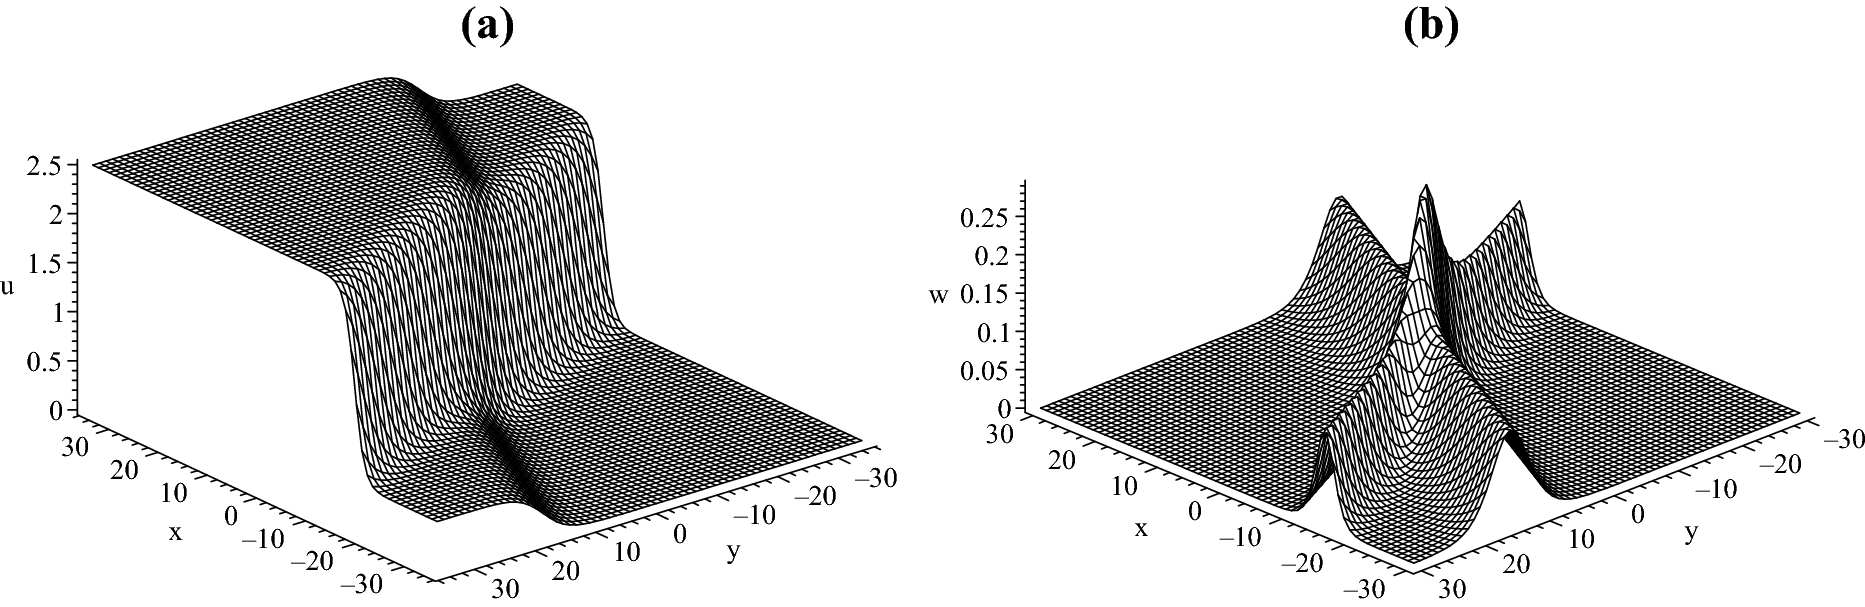 Characteristics and interactions of solitary and lump waves